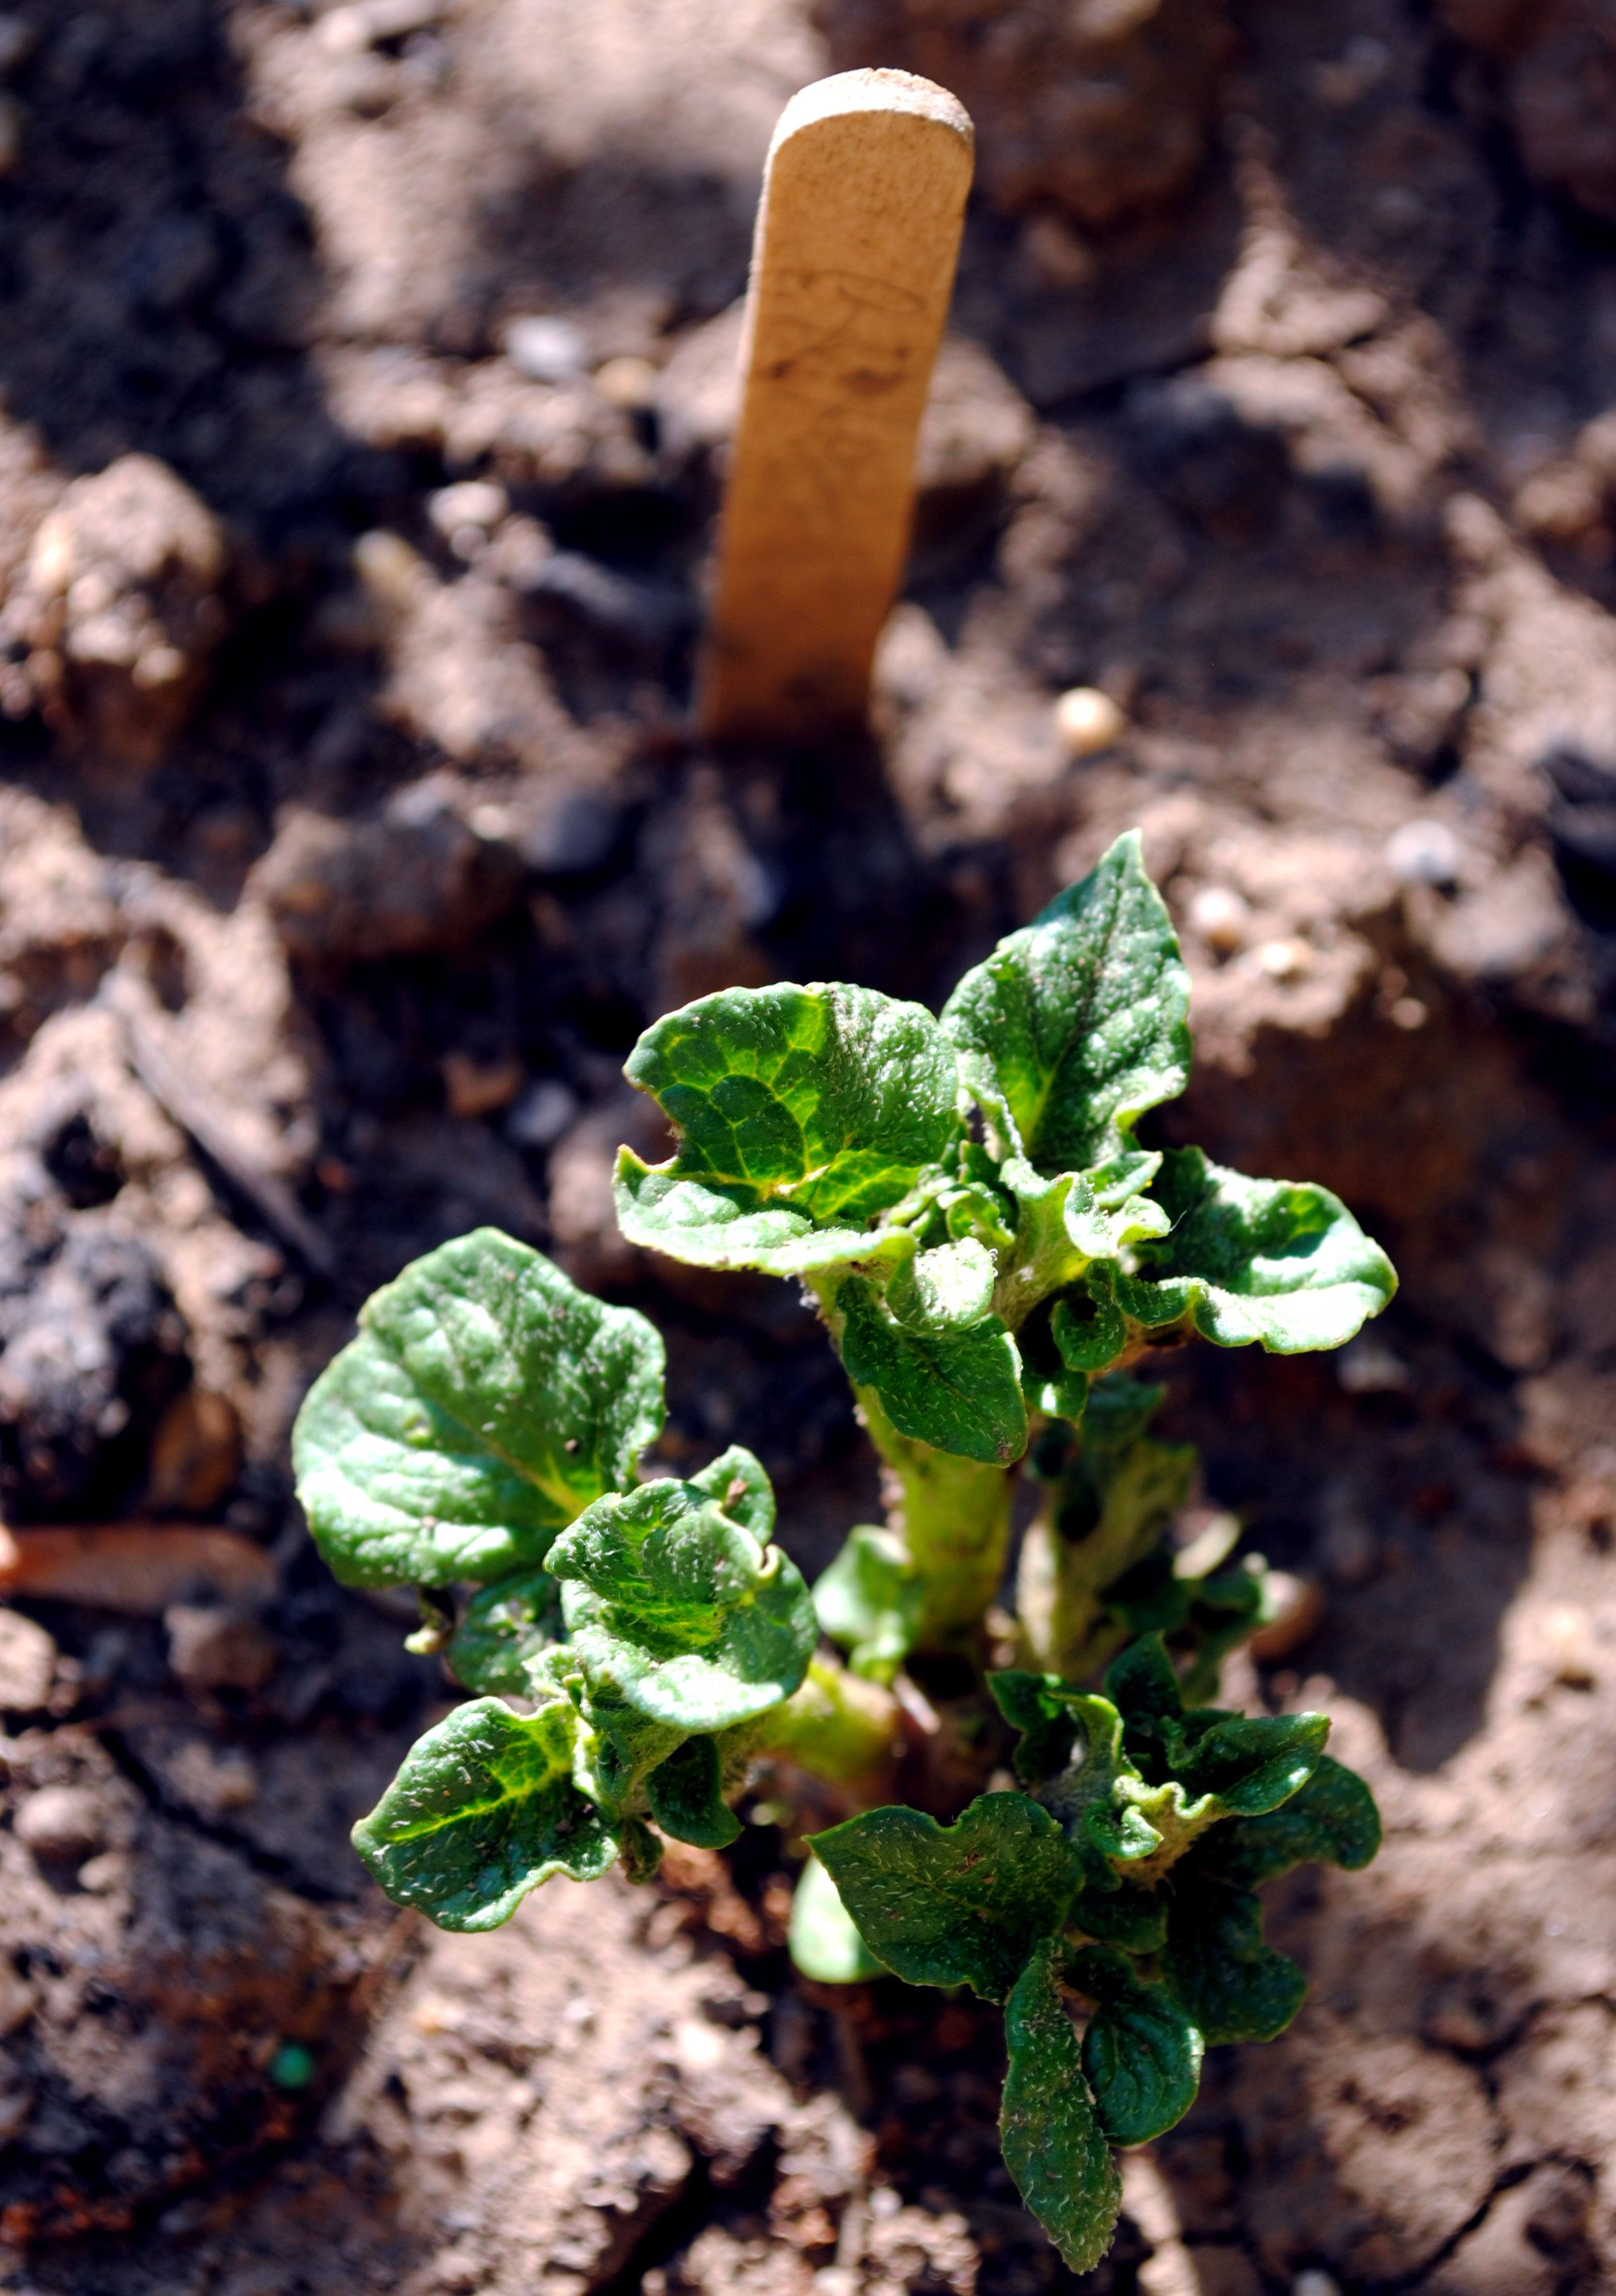 51112 yukon gold potato plant is starting to sprout